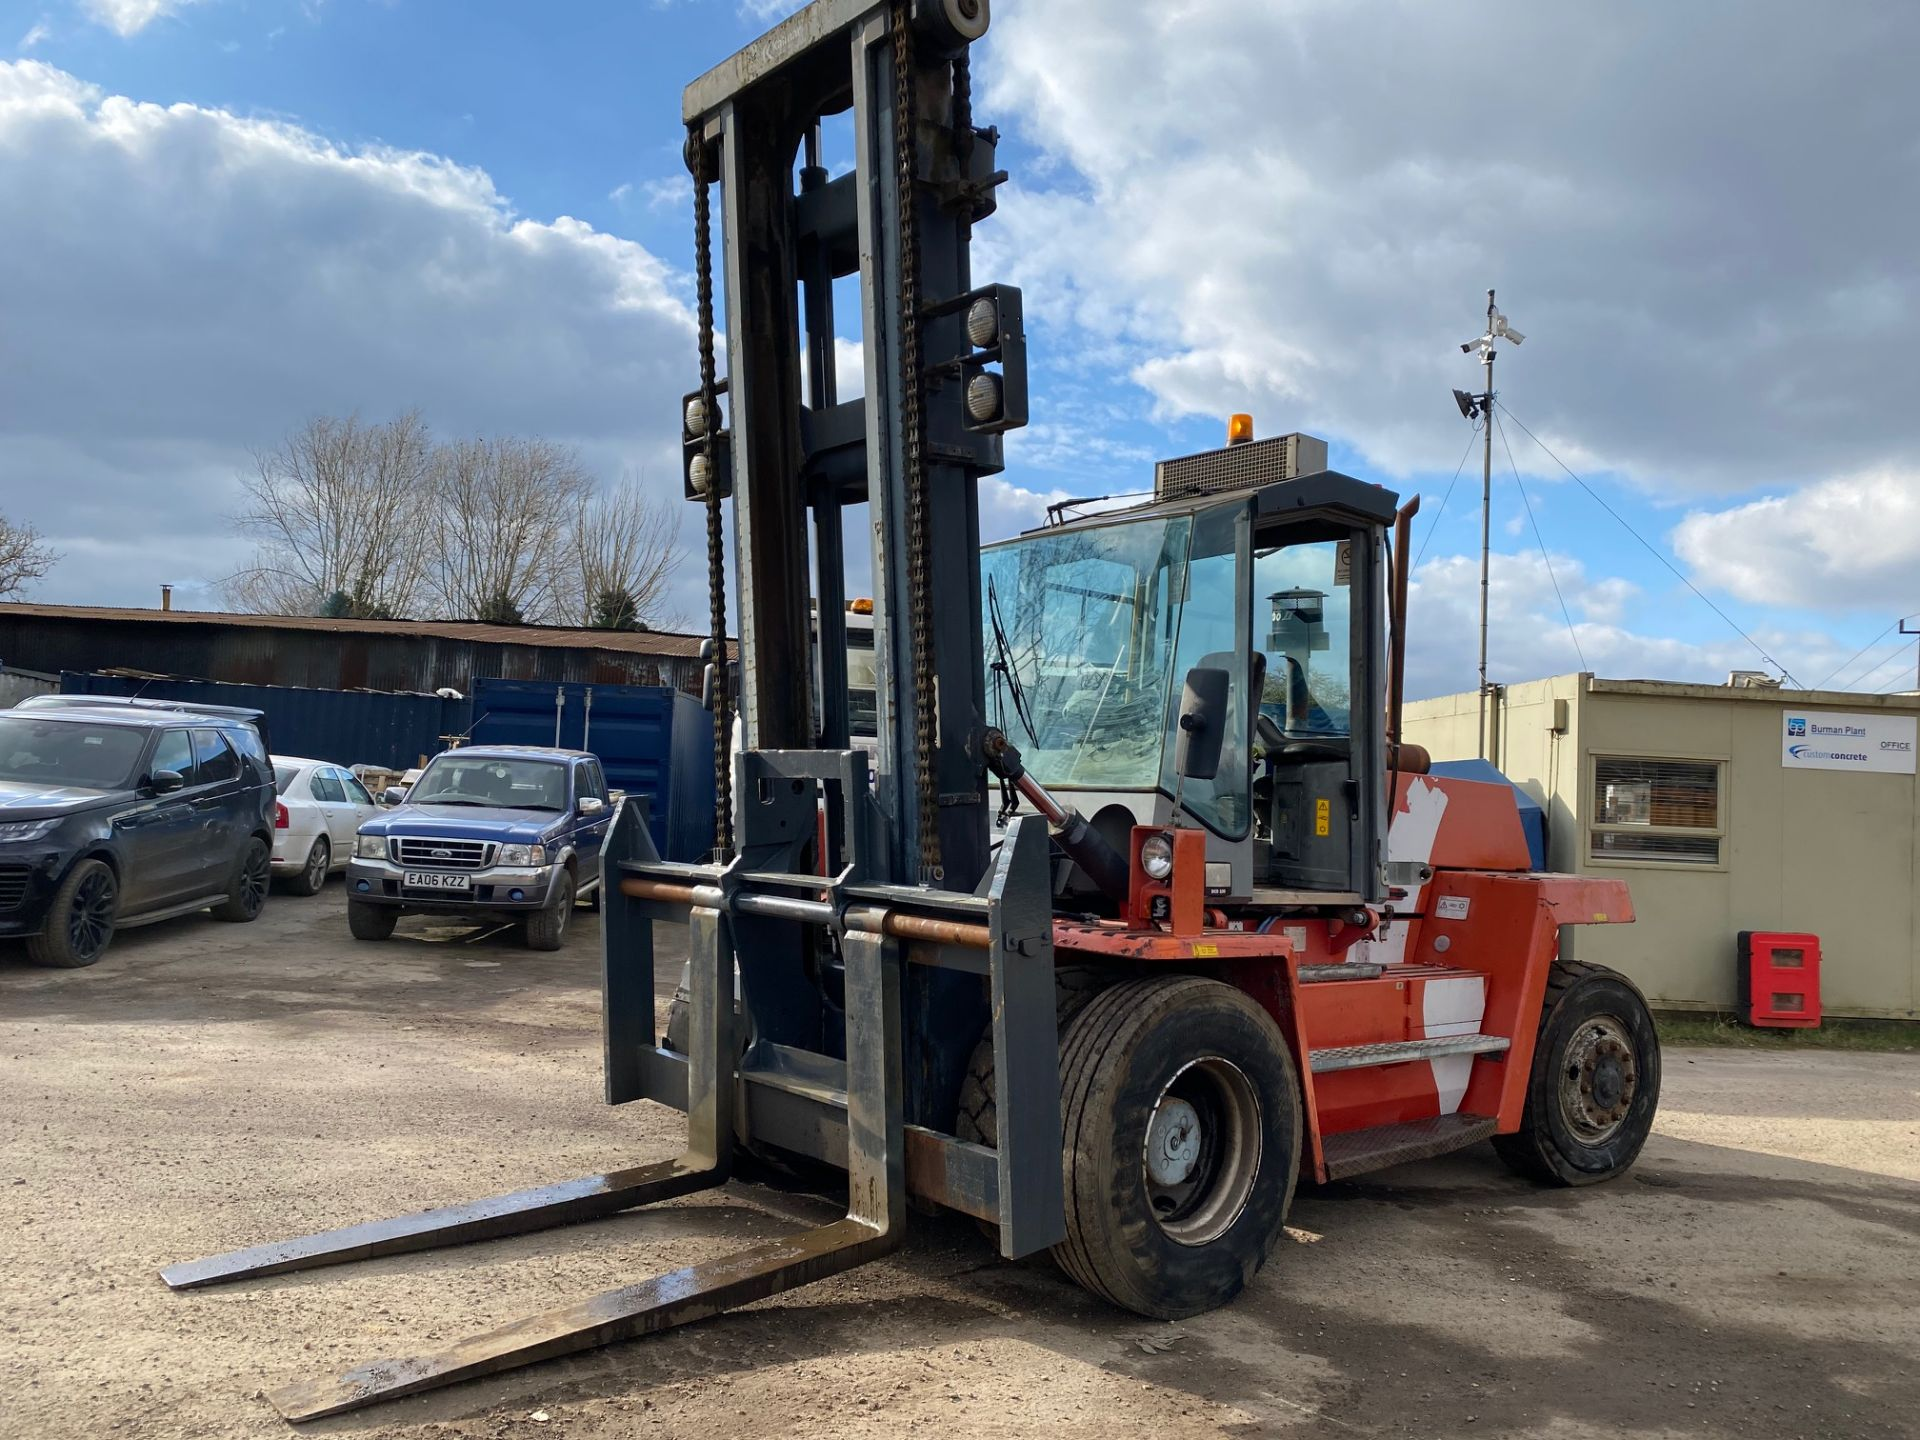 2002 KALMAR DCD100-6 10 TON FORKLIFT, STARTS, DRIVES AND RUNS AS IT SHOULD, THE DOOR IS MISSING - Image 2 of 8